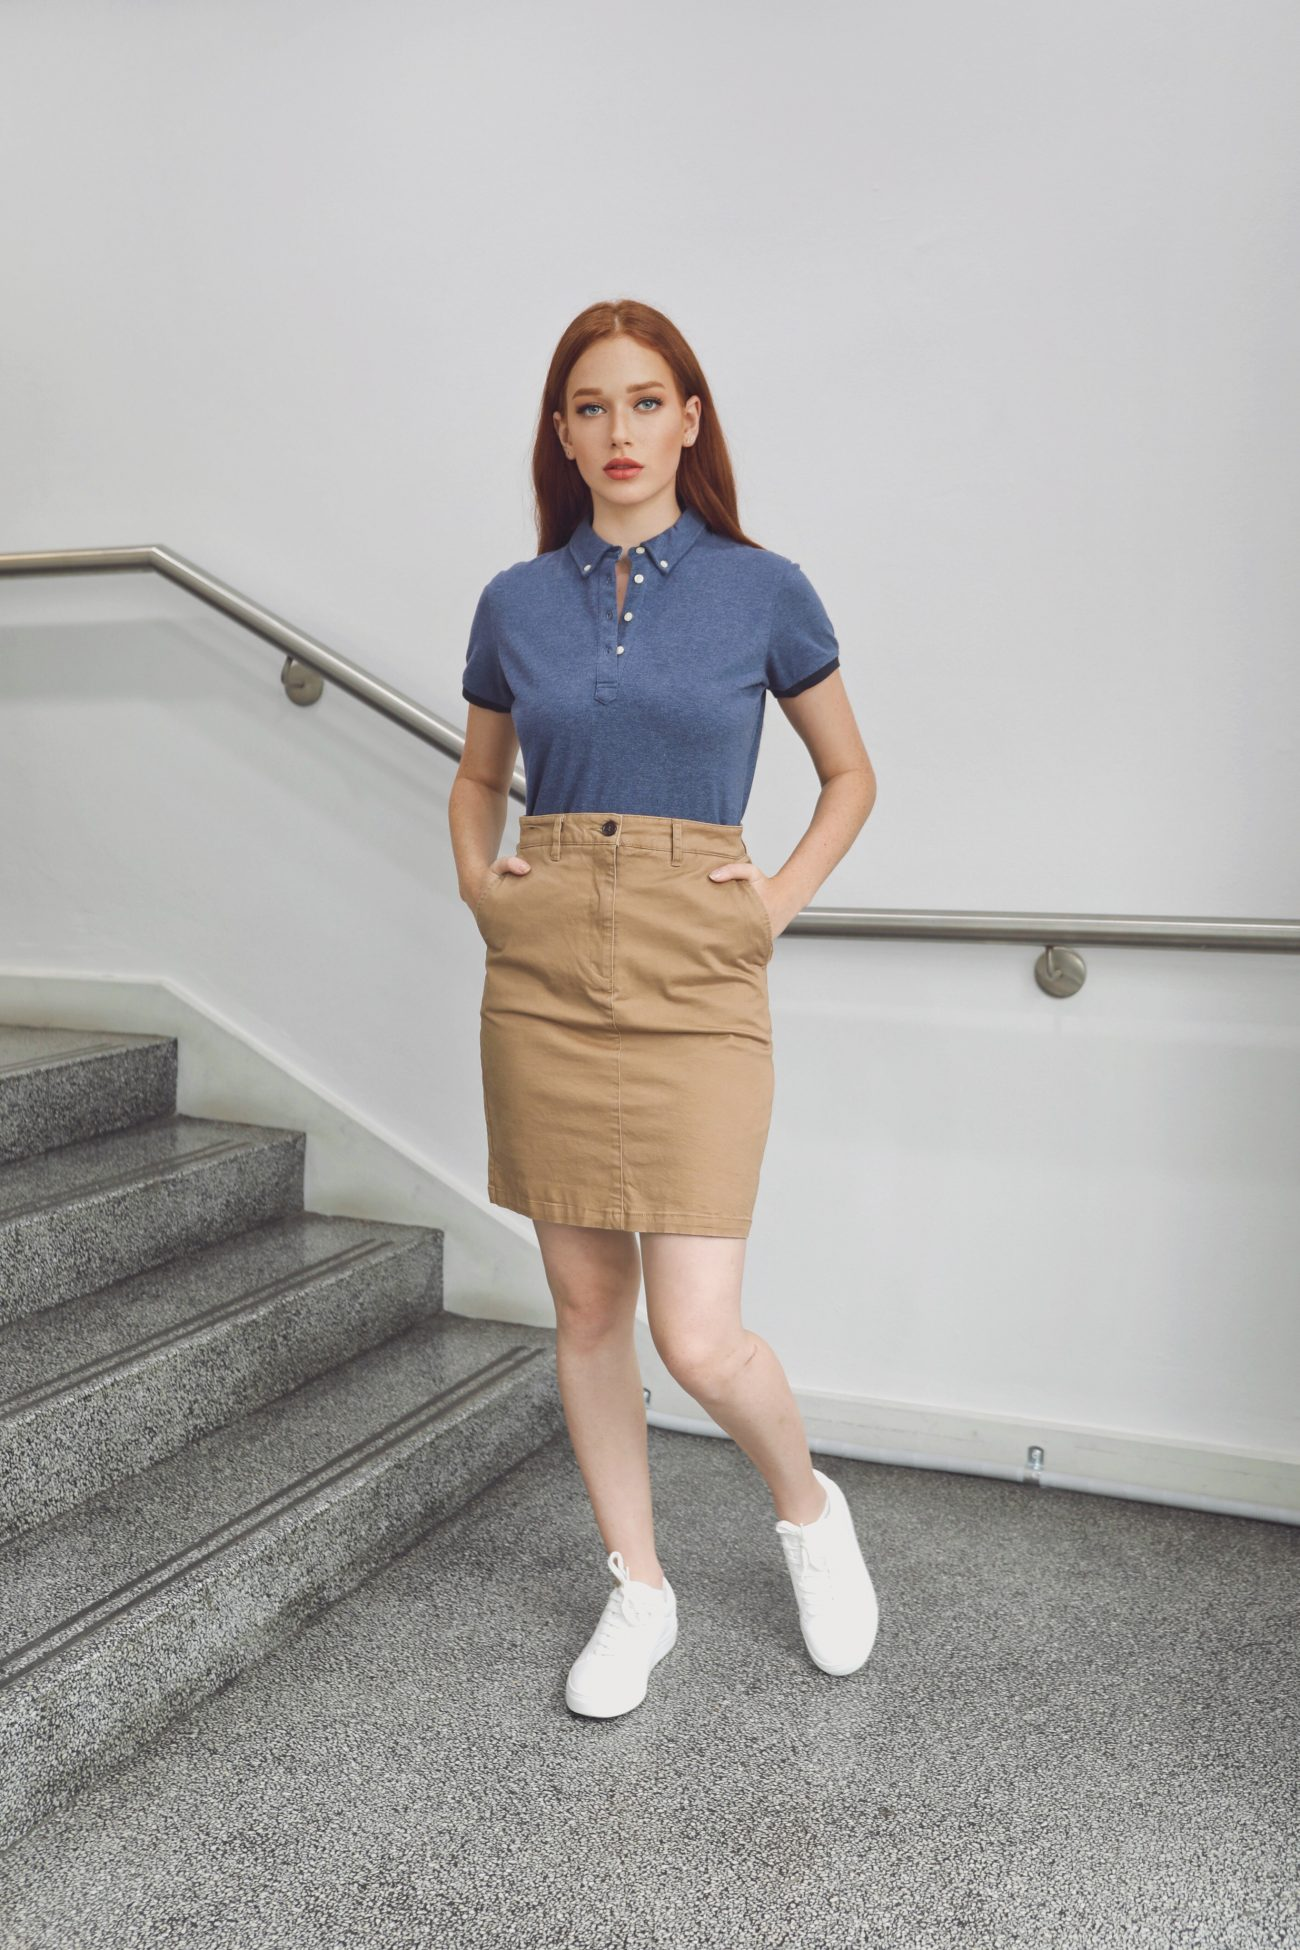 Polo and Chino Skirt